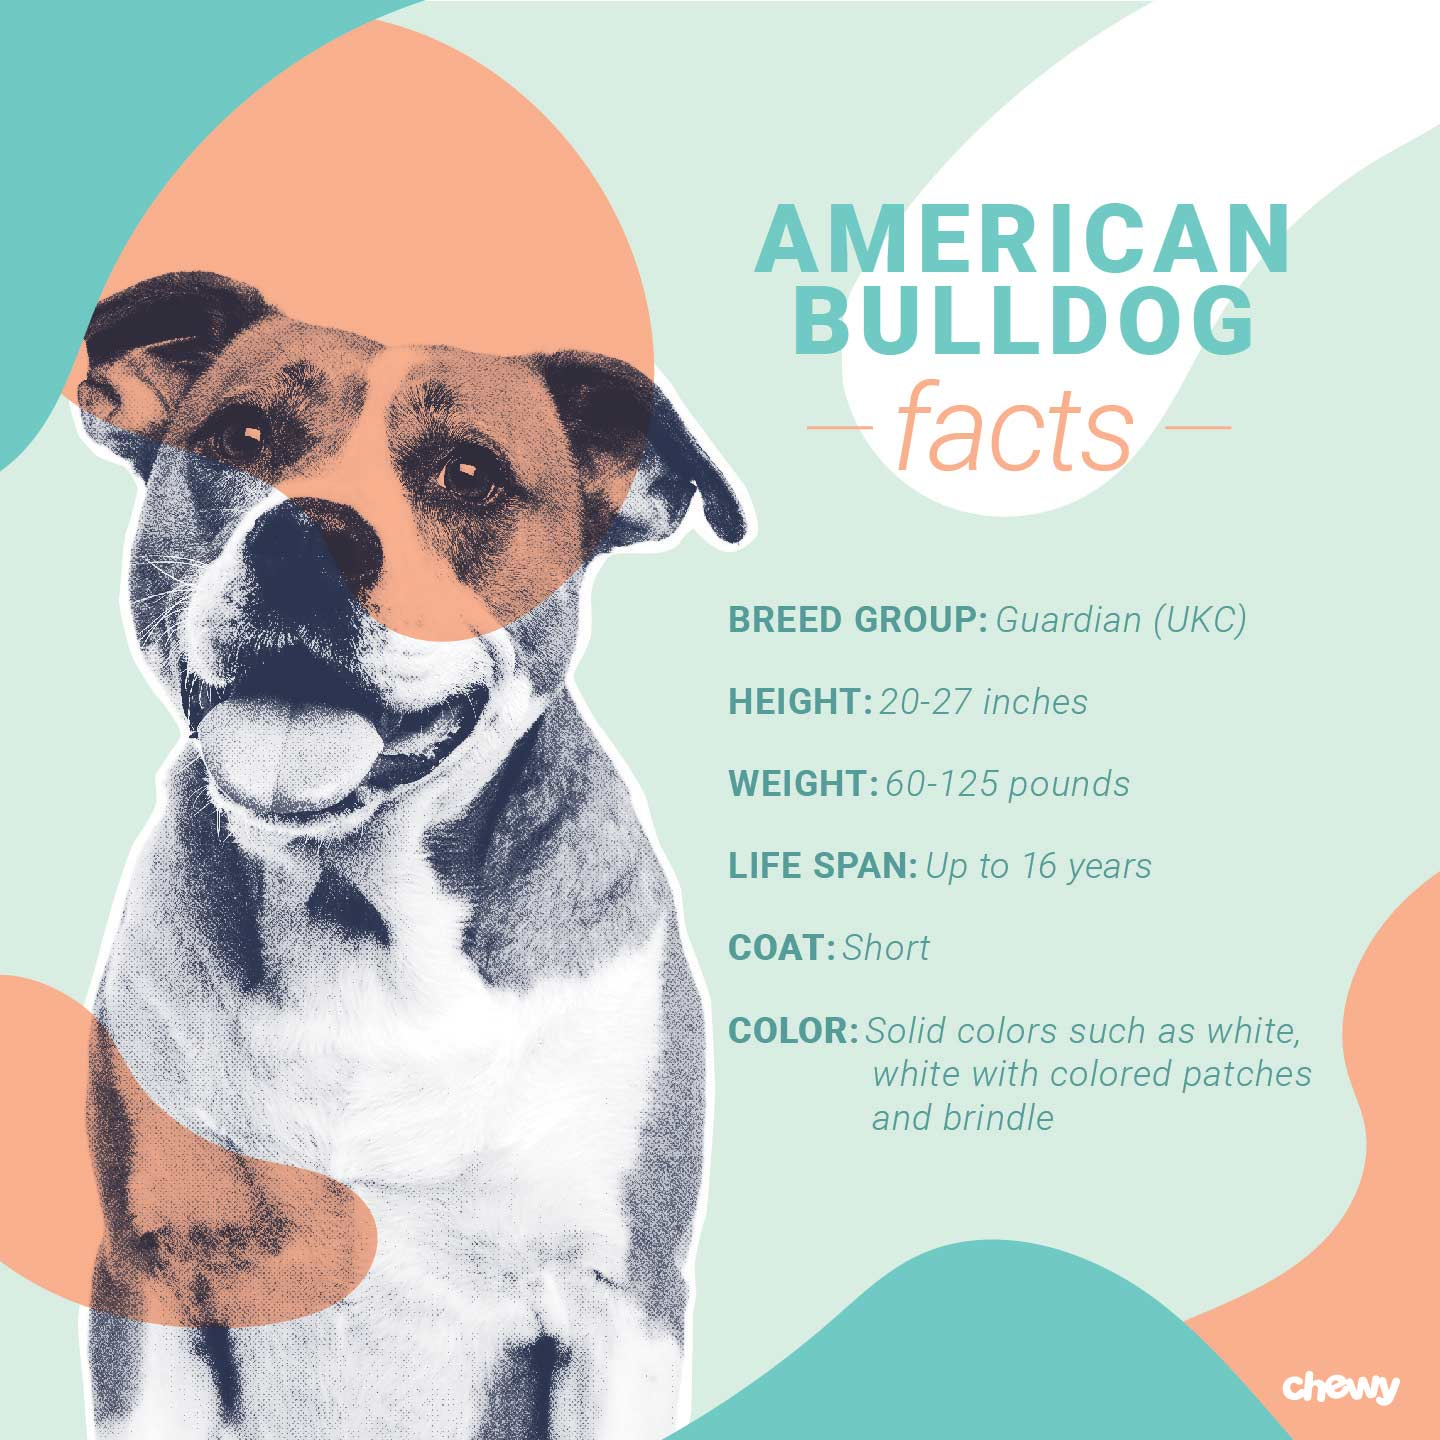 American Bulldog Facts